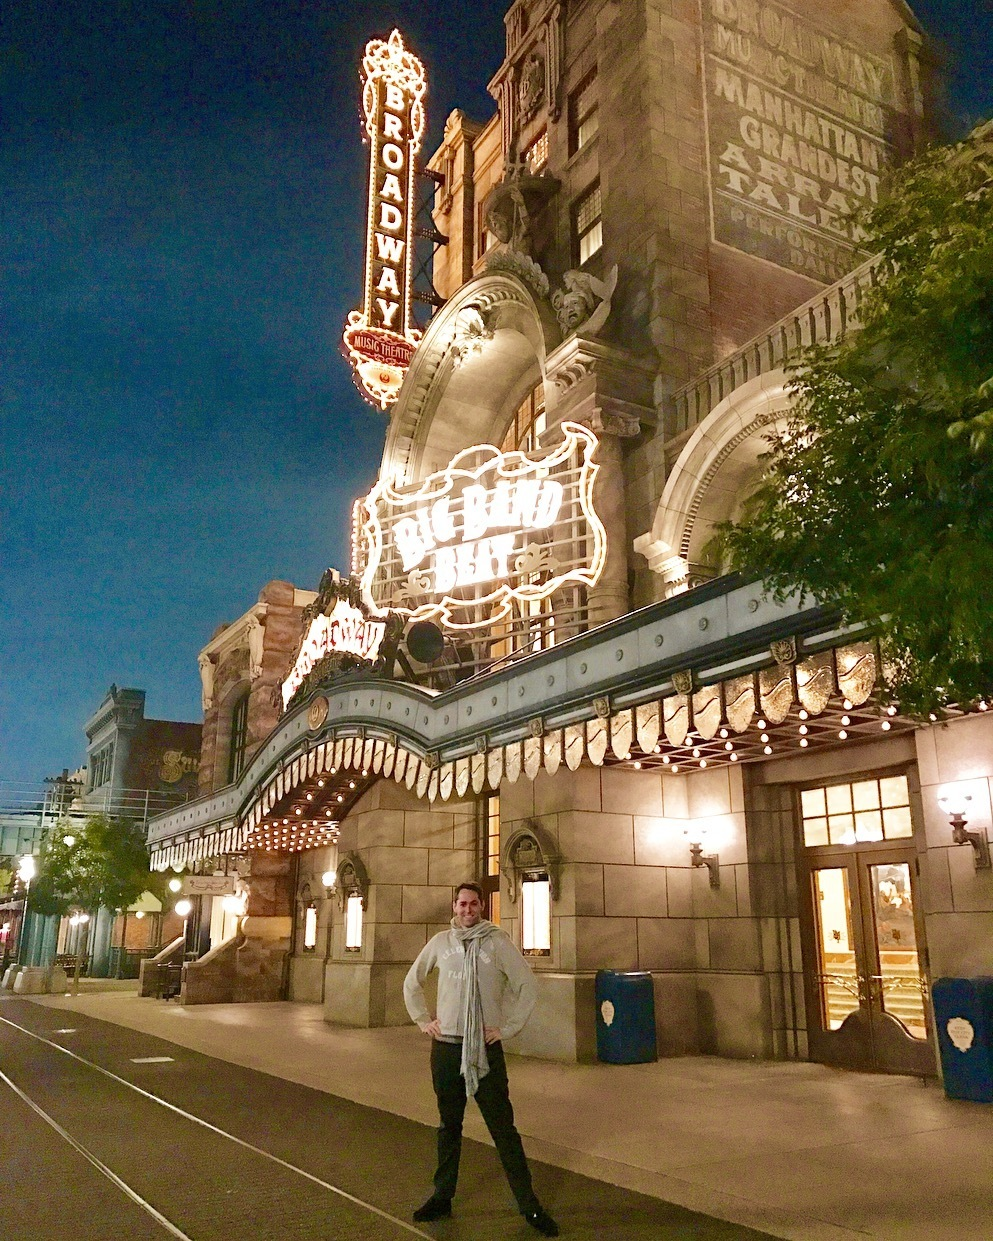 BWW Interview: BIG BAND BEAT - A Day In The Life With Rhett Wheeler at Broadway Music Theatre, Tokyo DisneySea